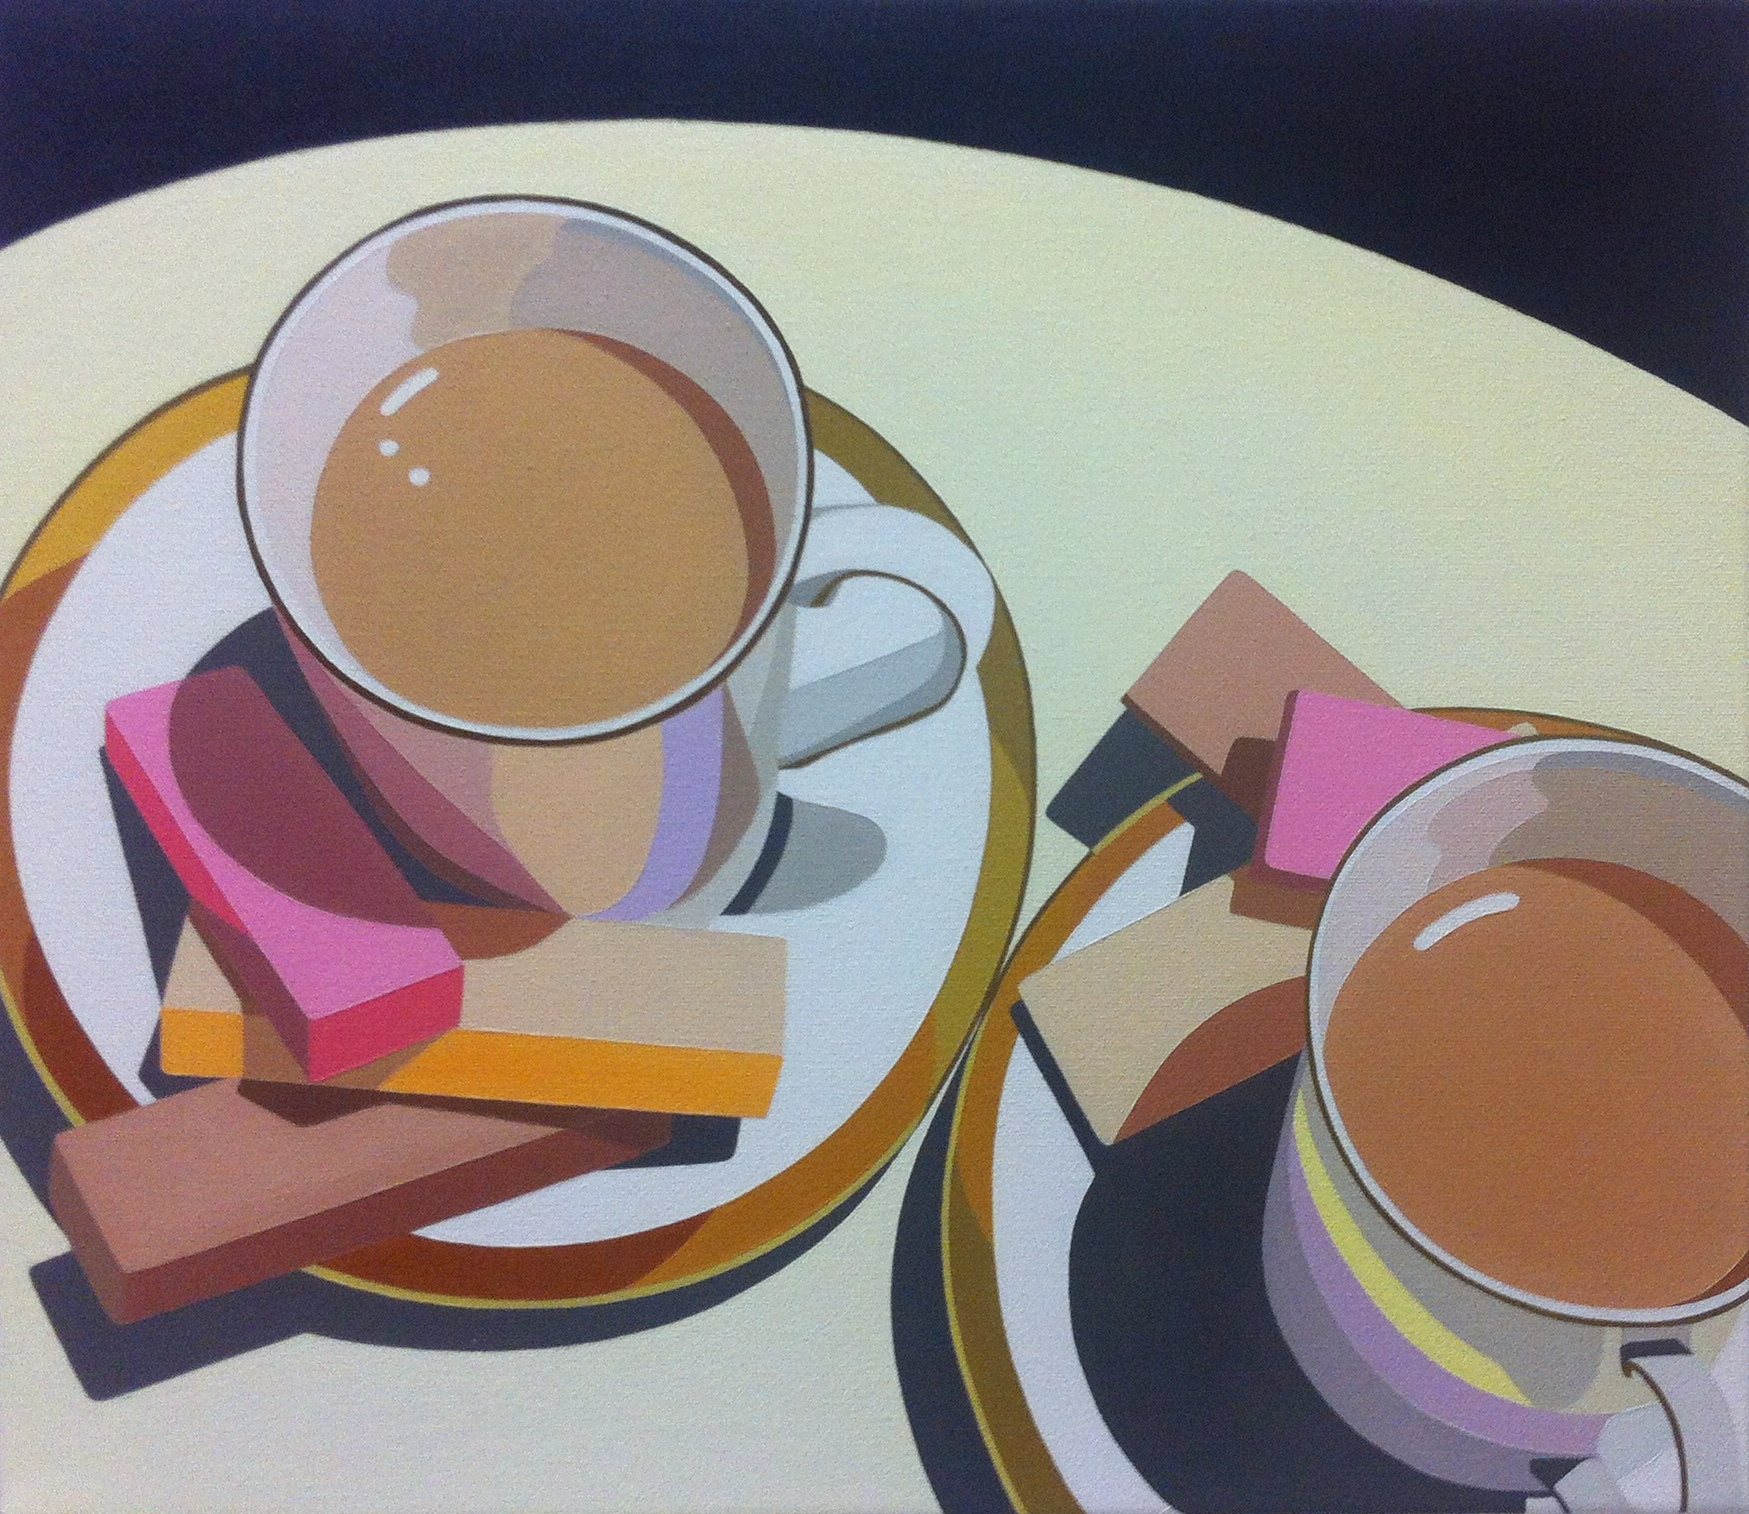 Tea cups and wafers